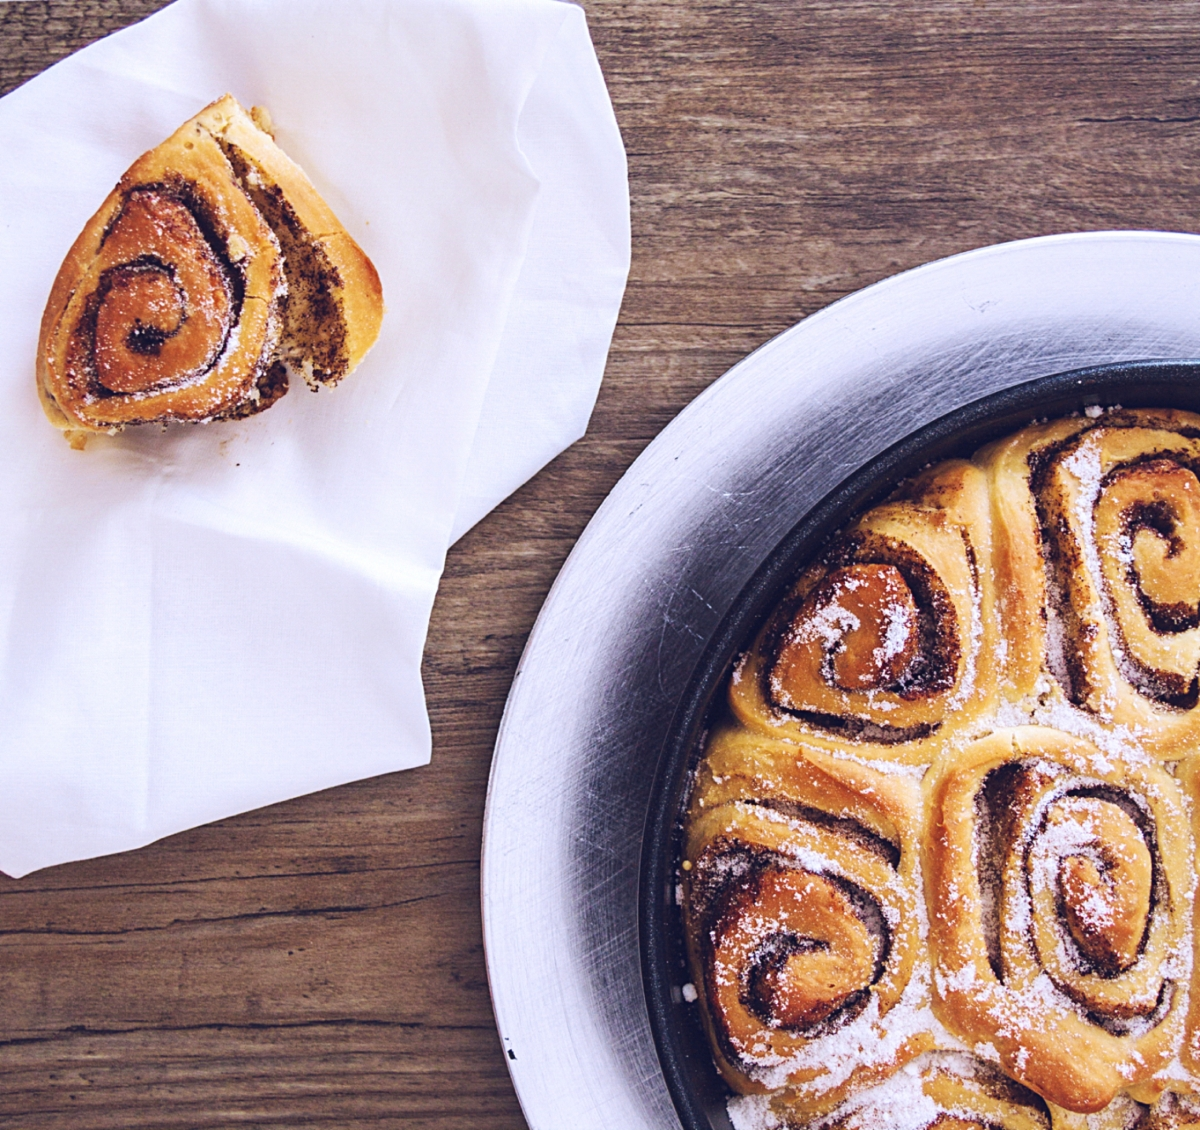 Cinnamon rolls for sugary souls